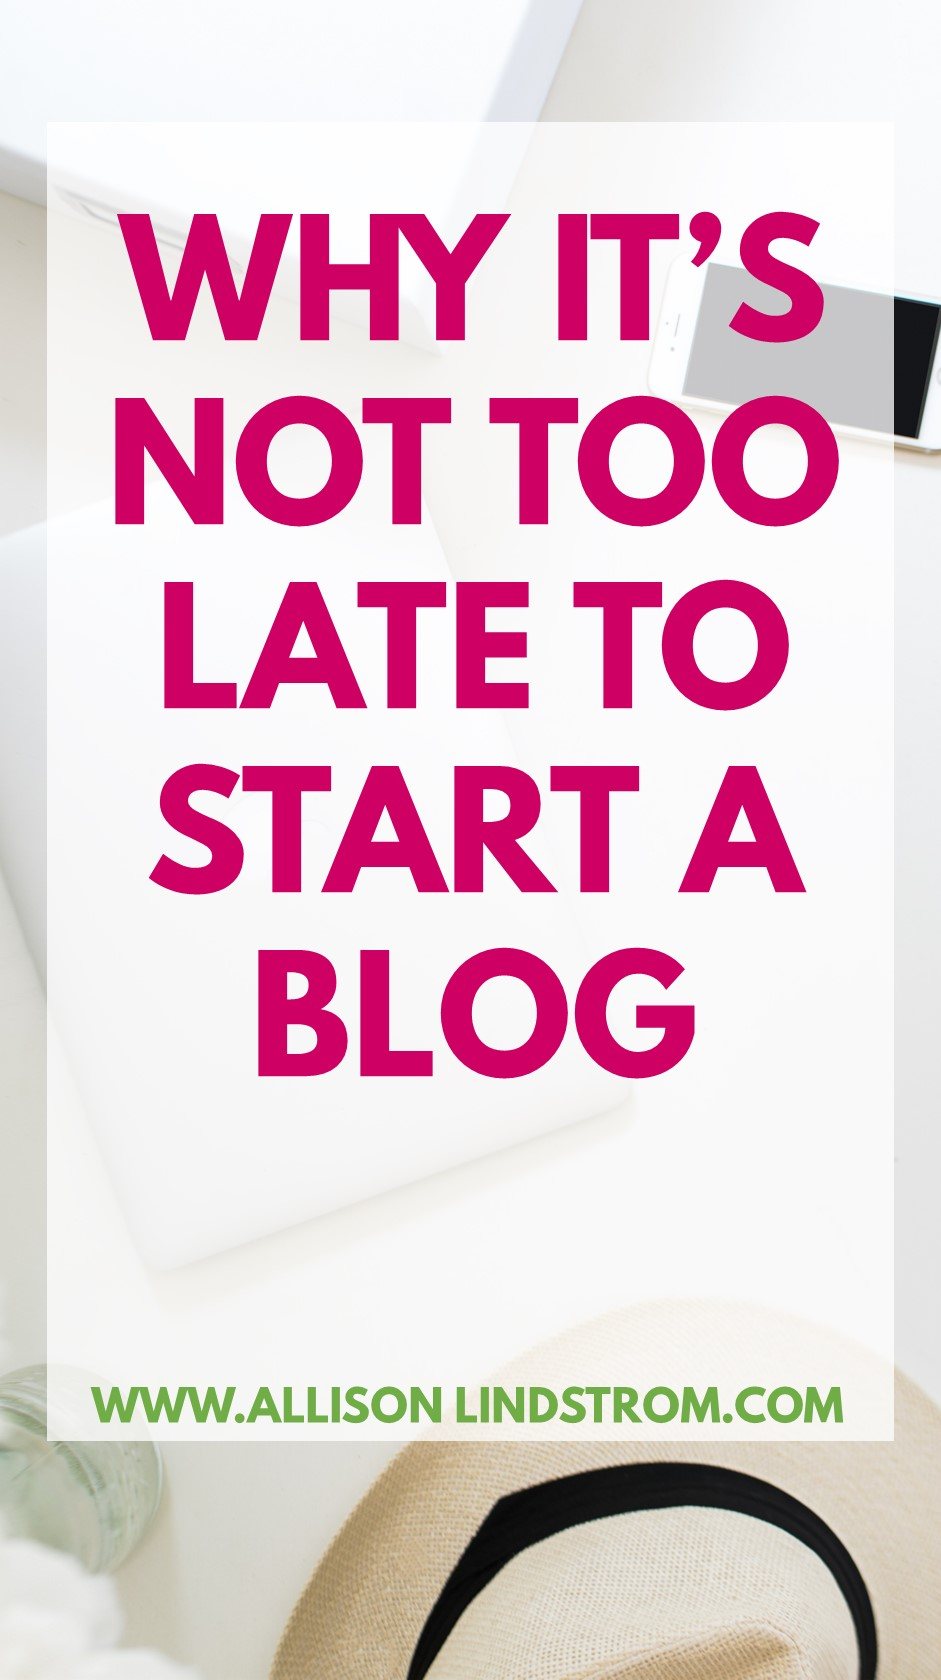 Starting a blog today doesn't mean you're too late to the party to make money online! With the right strategies, you can create a blog and eventually grow it into a profitable blogging business. Check out my favorite reasons why we absolutely need your fresh voice in our online communities!